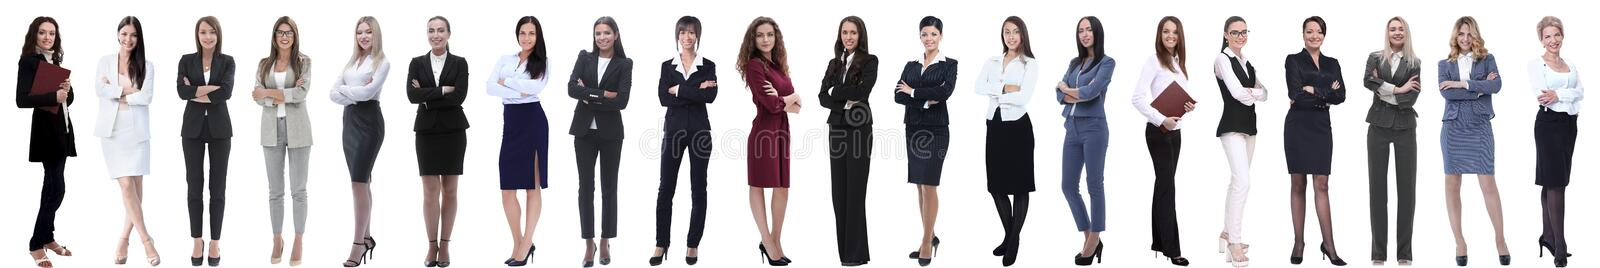 Group of successful young businesswoman standing in a row royalty free stock photo